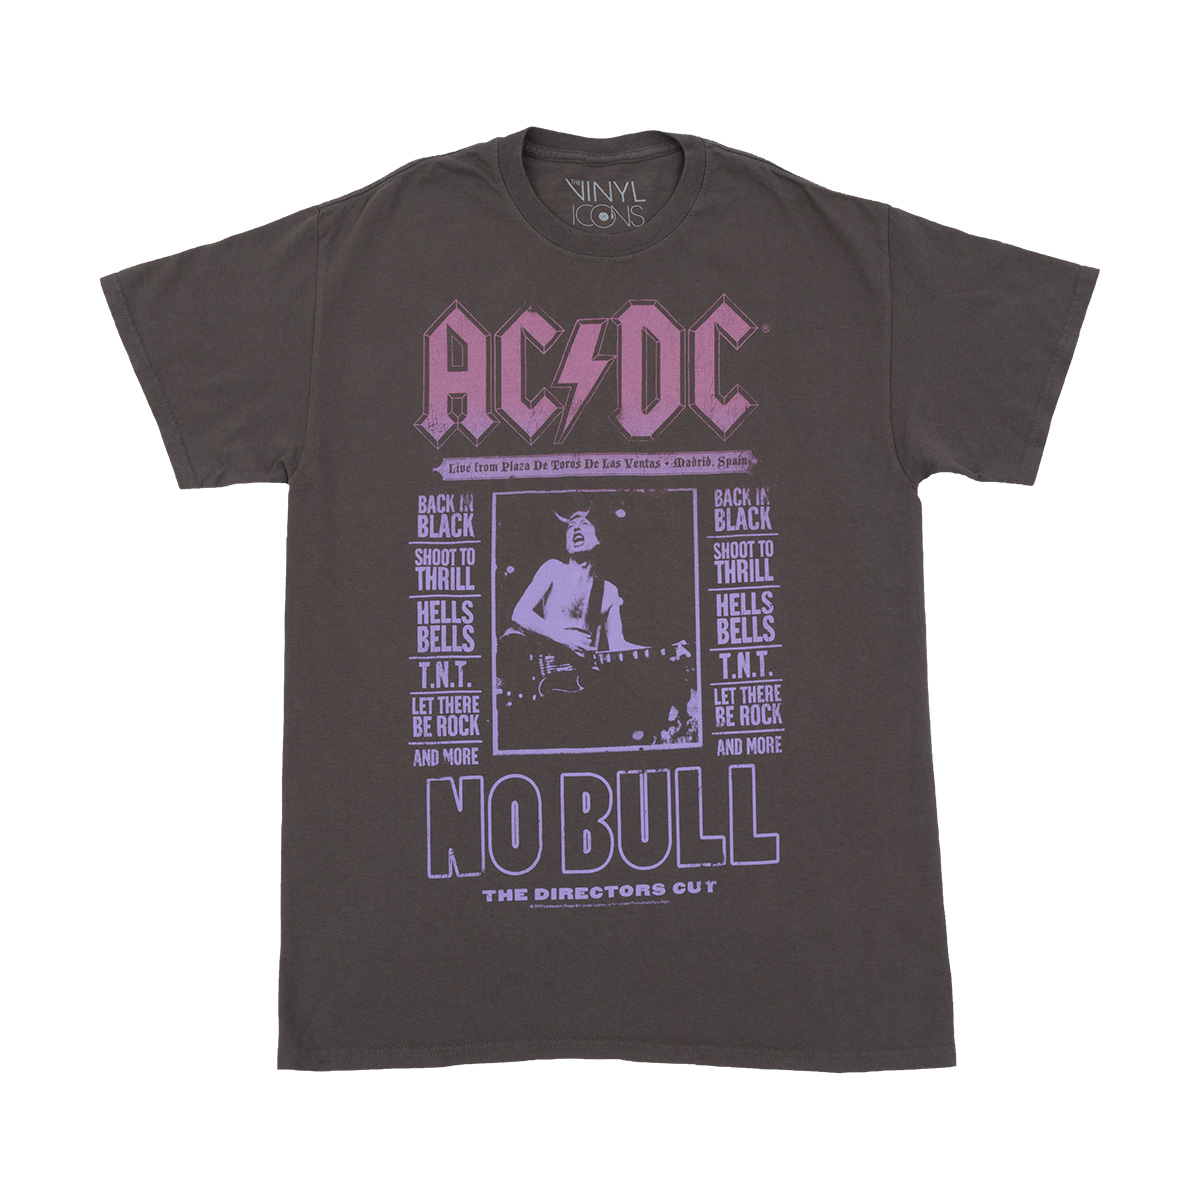 AC/DC Live from Plaza De Toros No Bull Faded T-shirt